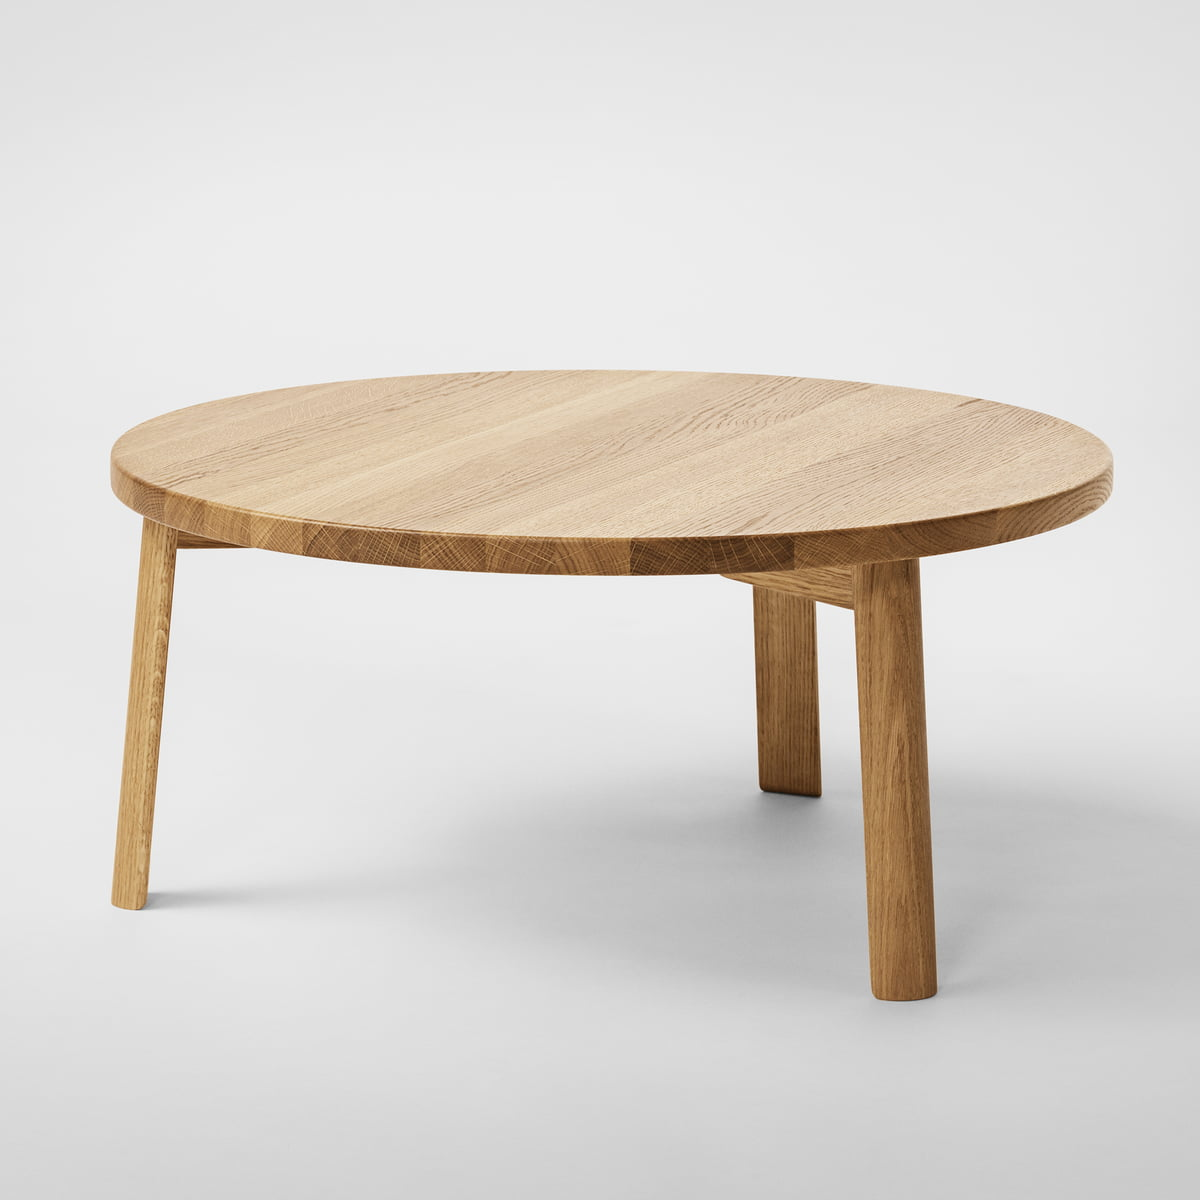 Ease coffee table by million connox shop for Table design 90 cm